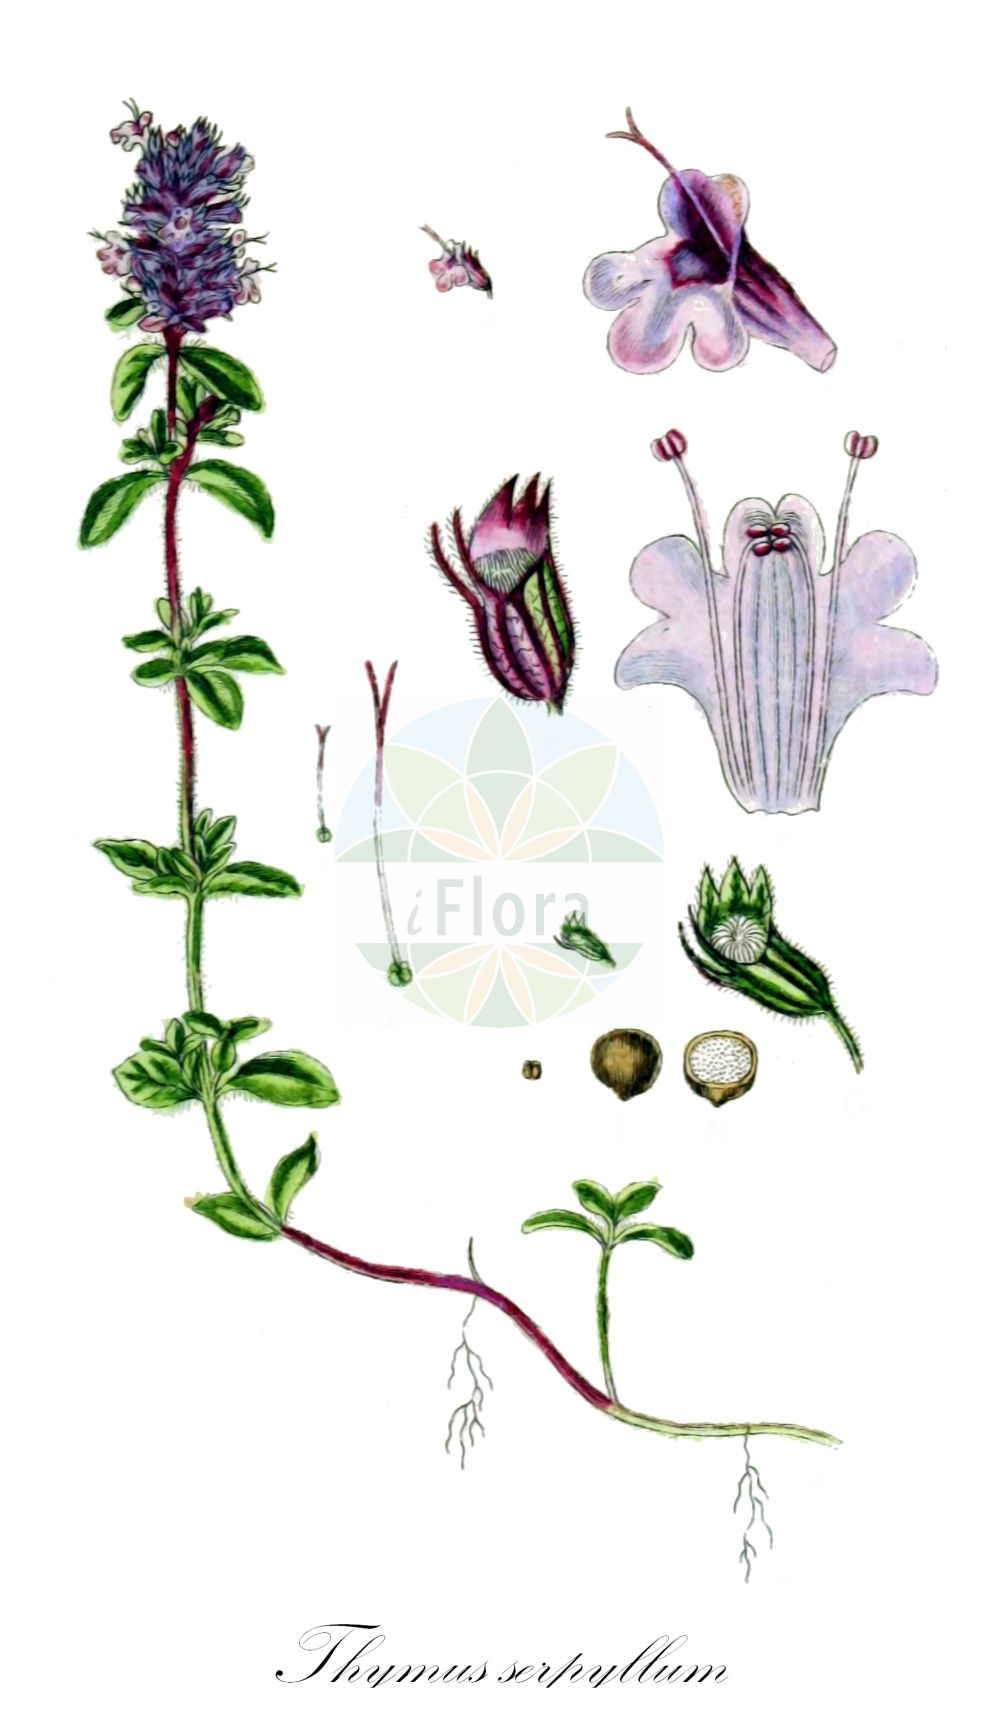 Historische Abbildung von Thymus serpyllum (Gewoehnlicher Sand-Thymian - Breckland Thyme). Das Bild zeigt Blatt, Bluete, Frucht und Same. ---- Historical Drawing of Thymus serpyllum (Gewoehnlicher Sand-Thymian - Breckland Thyme).The image is showing leaf, flower, fruit and seed.(Thymus serpyllum,Gewoehnlicher Sand-Thymian,Breckland Thyme,Origanum serpyllum,Serpyllum vulgare,,Innsbrucker Quendel,Innsbrucker Thymian,Sand-Quendel,Sand-Thymian,Tiroler Quendel,Breckland Garden,Creeping Thyme,Mother-of-Thyme,Thymus,Thymian,Thyme,Lamiaceae,Lippenbluetengewaechse;Lippenbluetler,Nettle family,Blatt,Bluete,Frucht,Same,leaf,flower,fruit,seed,Sturm (1796f))